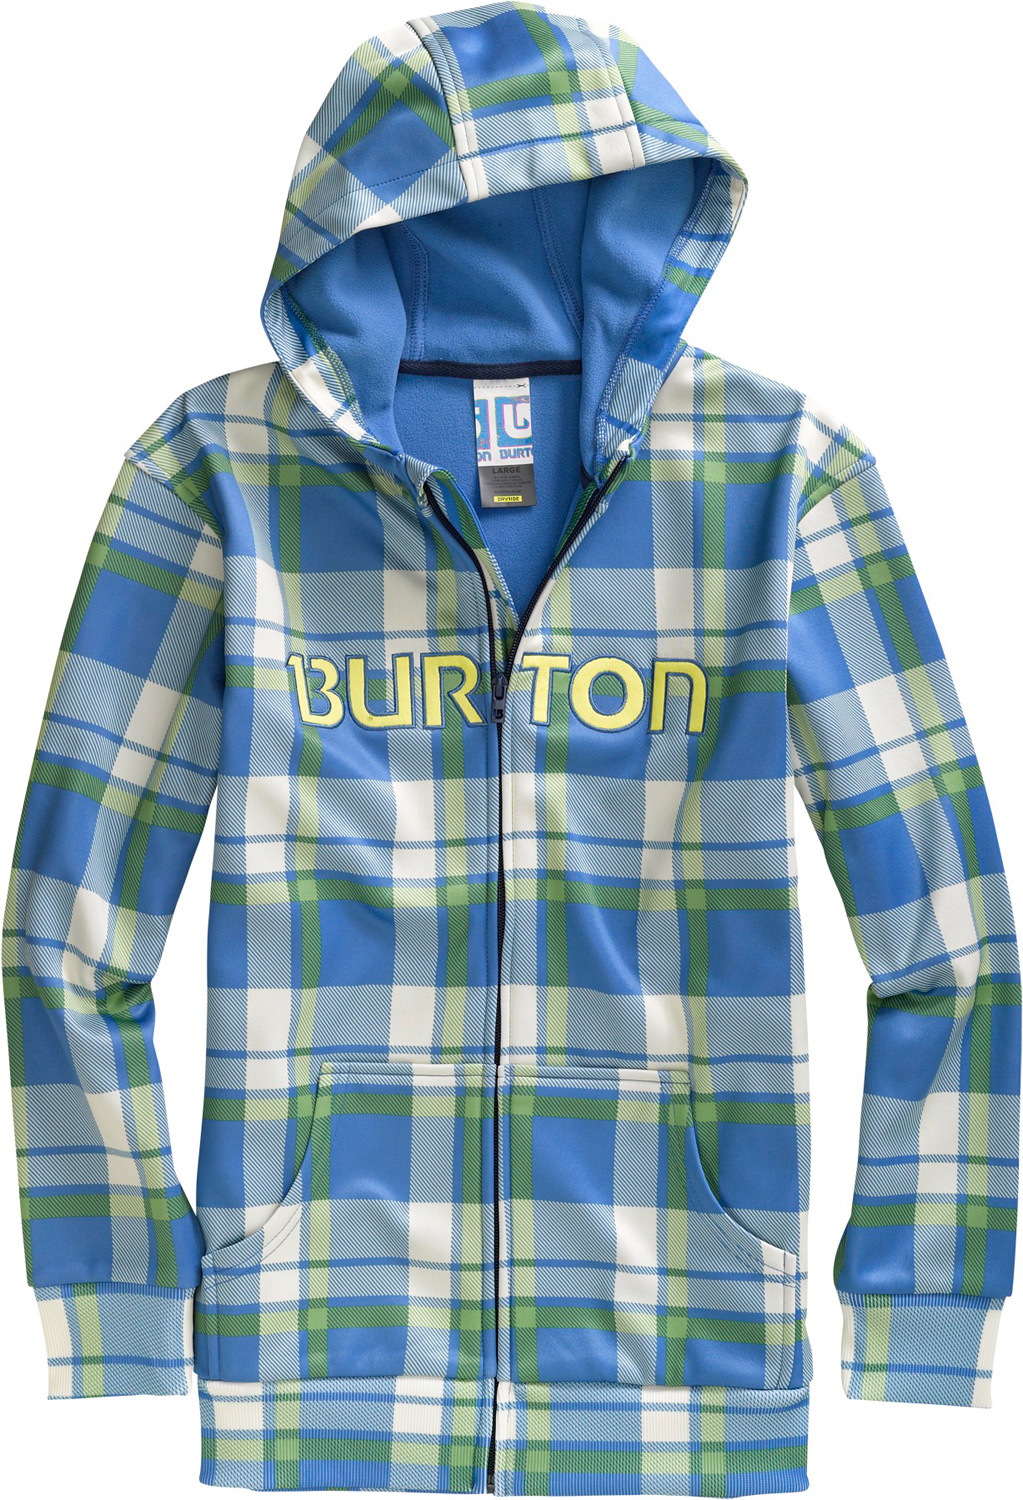 Snowboard The last hoodie you'll ever need. Ride, hike, or hang without succumbing to the chilling side effects of cotton.Key Features of the Burton Bonded Hoodie: DRYRIDE Thermex Bonded Fleece Sweatshirt Style Fulltime Hood Kangaroo Handwarmer Pockets Ribbed Cuffs and Hem Sig Fit - $33.56